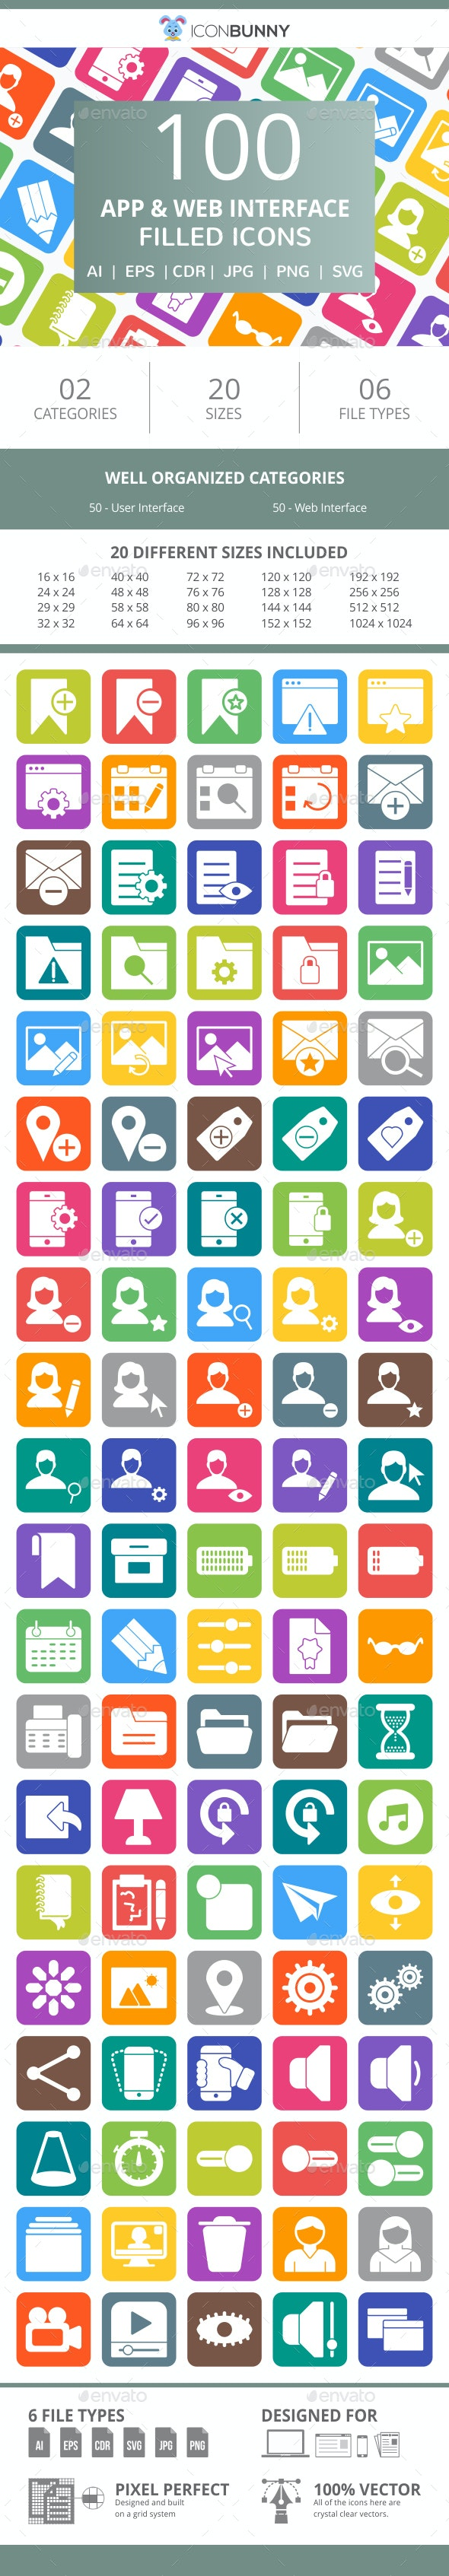 100 App & Web Interface Filled Round Corner Icons - Icons